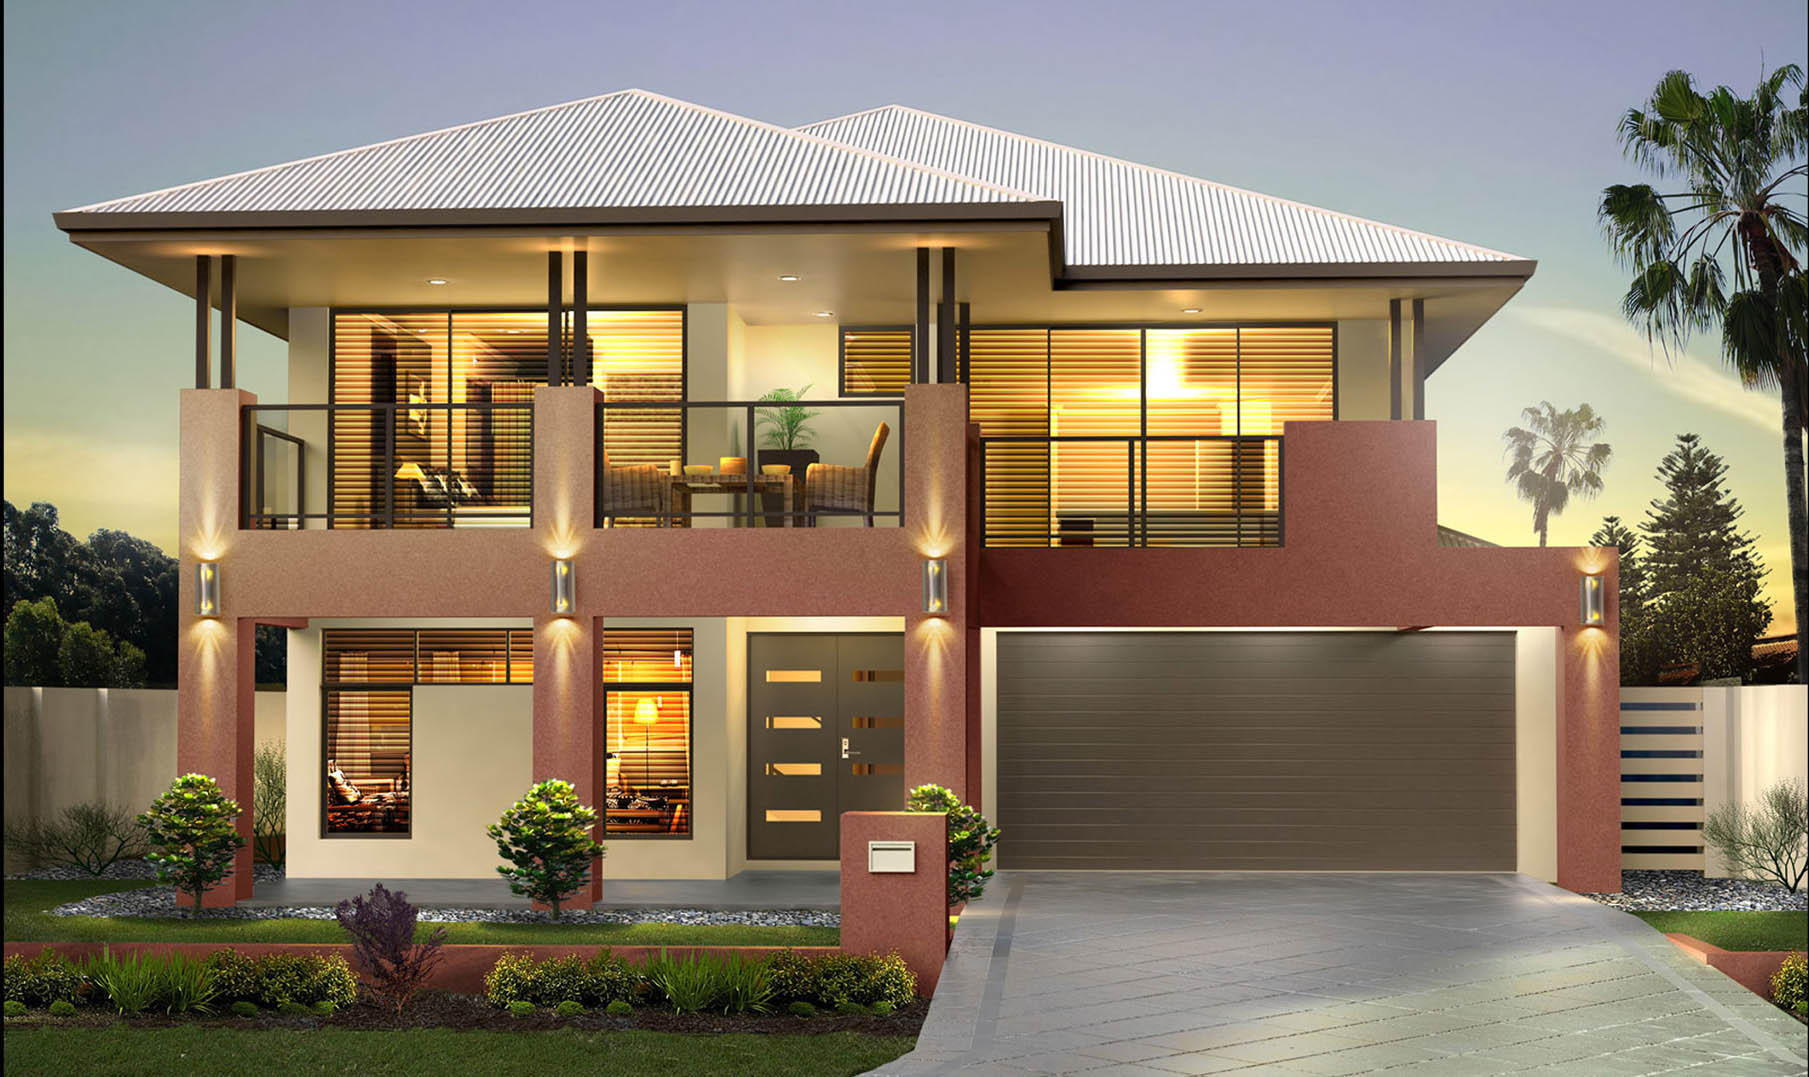 San remo series 1 upstairs living new 2 storey homes perth for Home design images